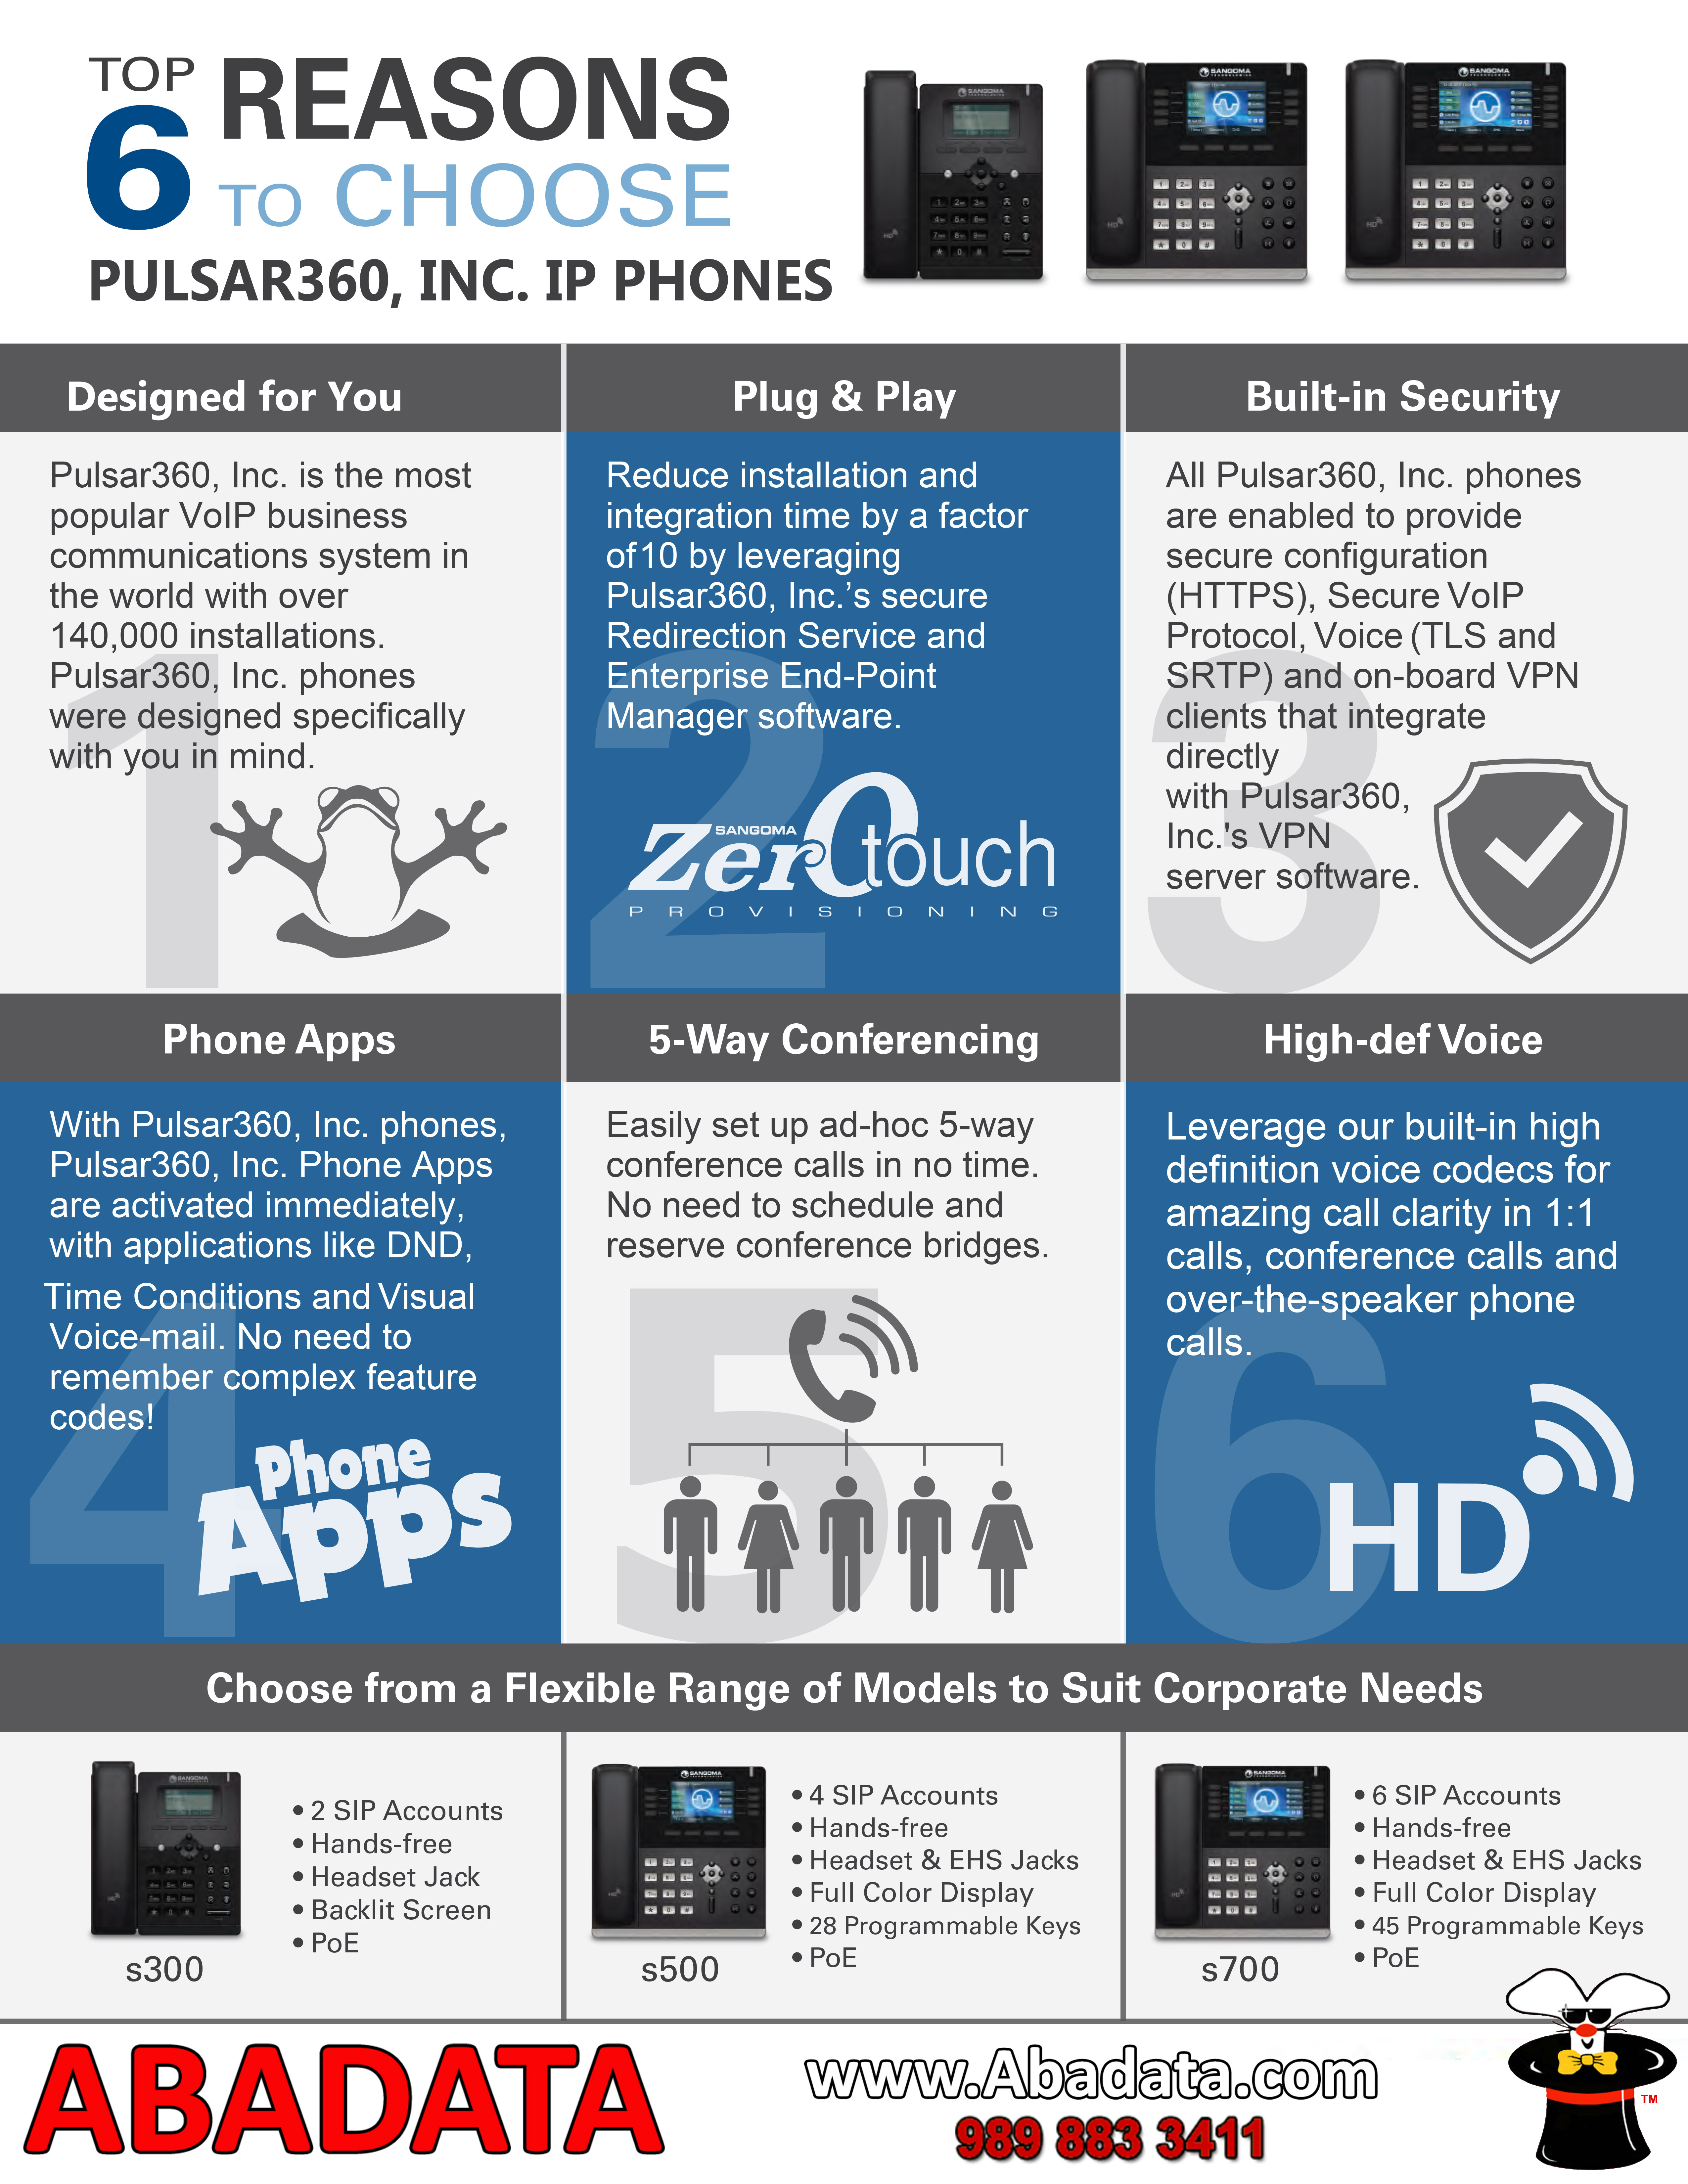 6 Reasons To Choose Pulsar 360